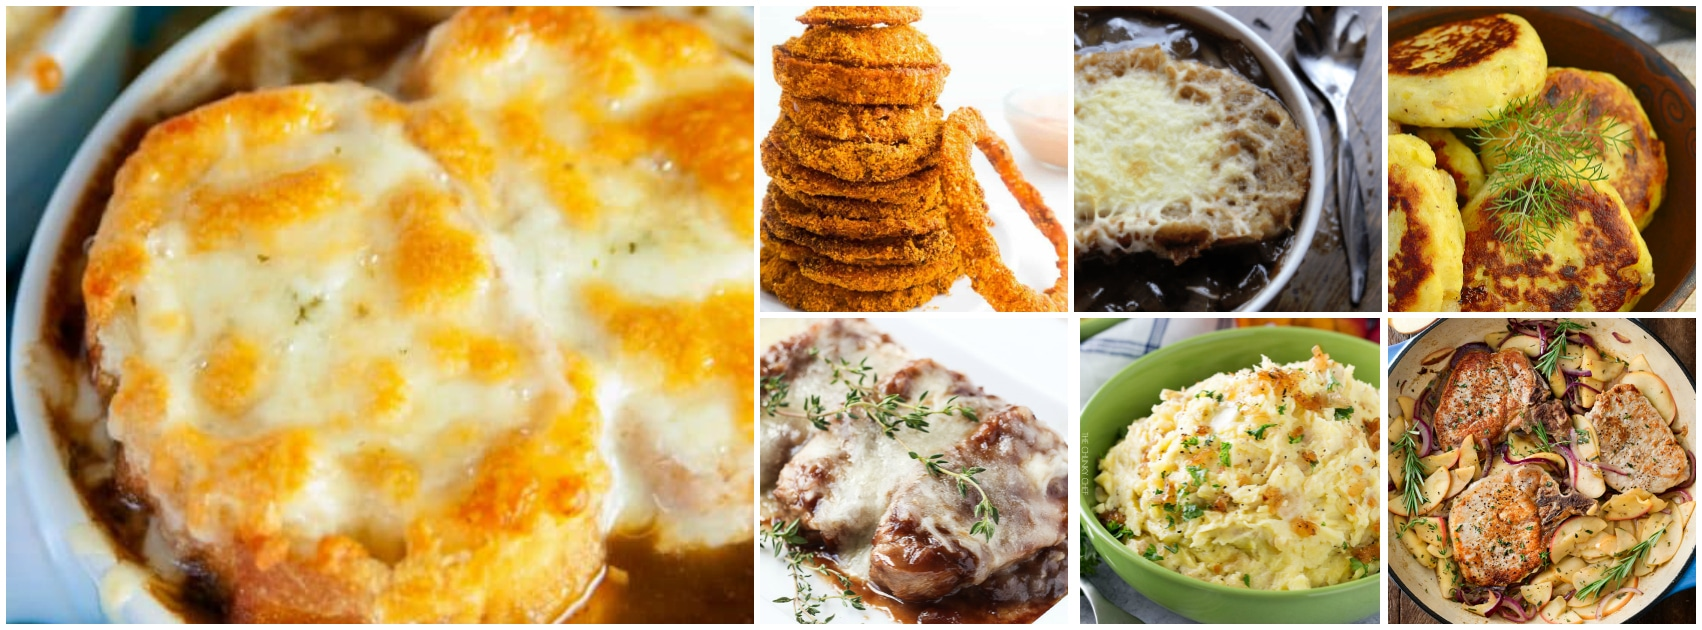 17 Recipes With Onions